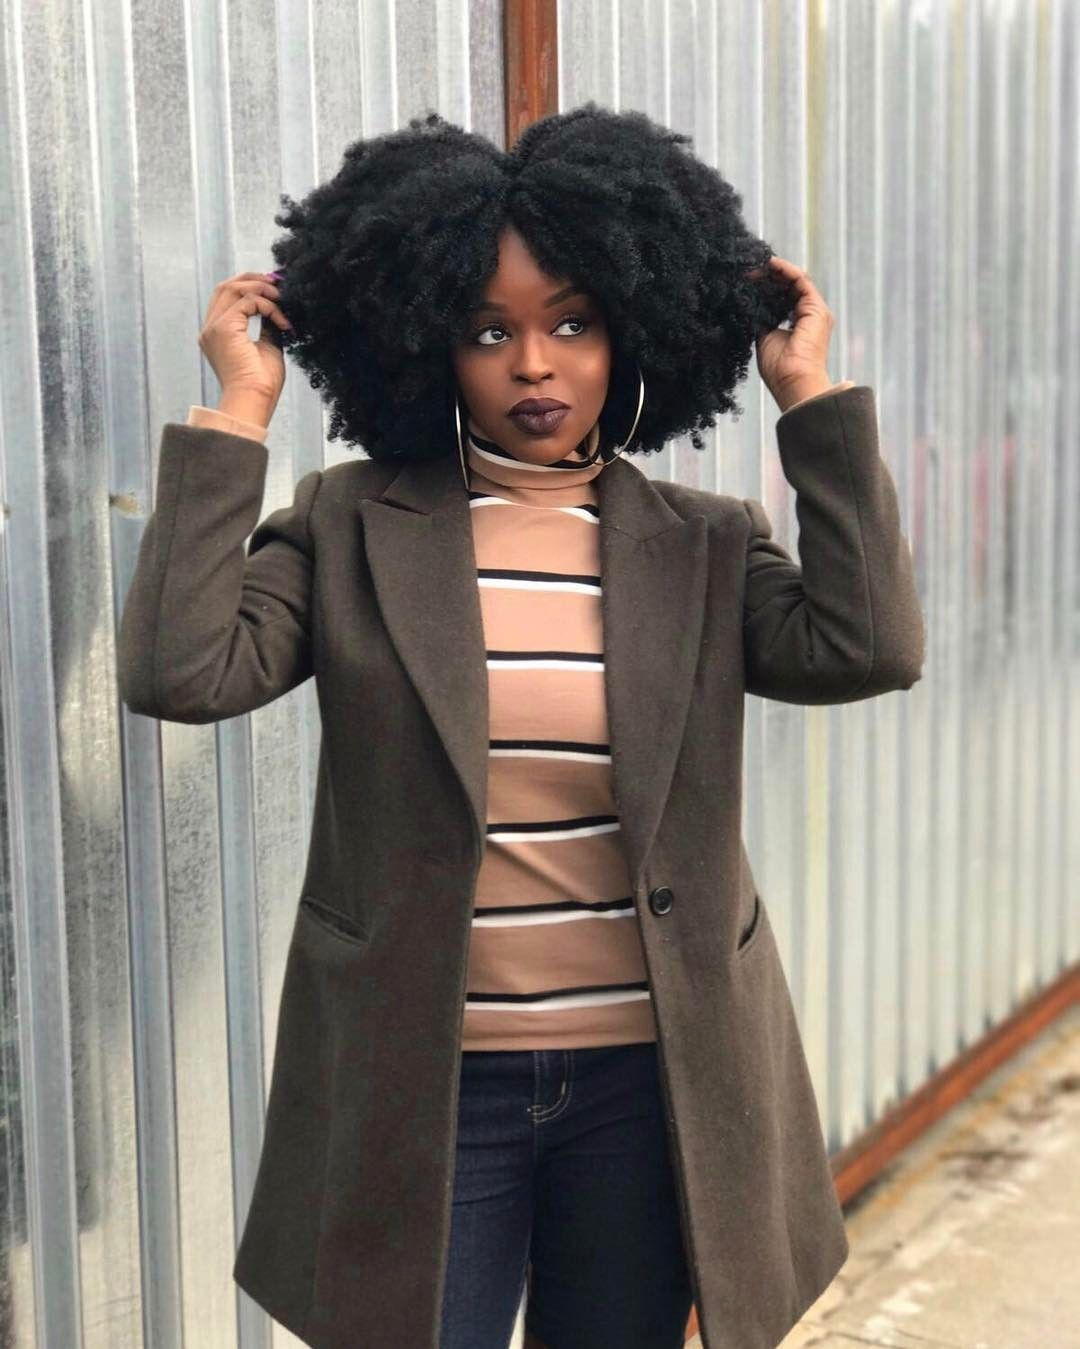 Pin by bradesha collier on hair and beauty pinterest hair goals